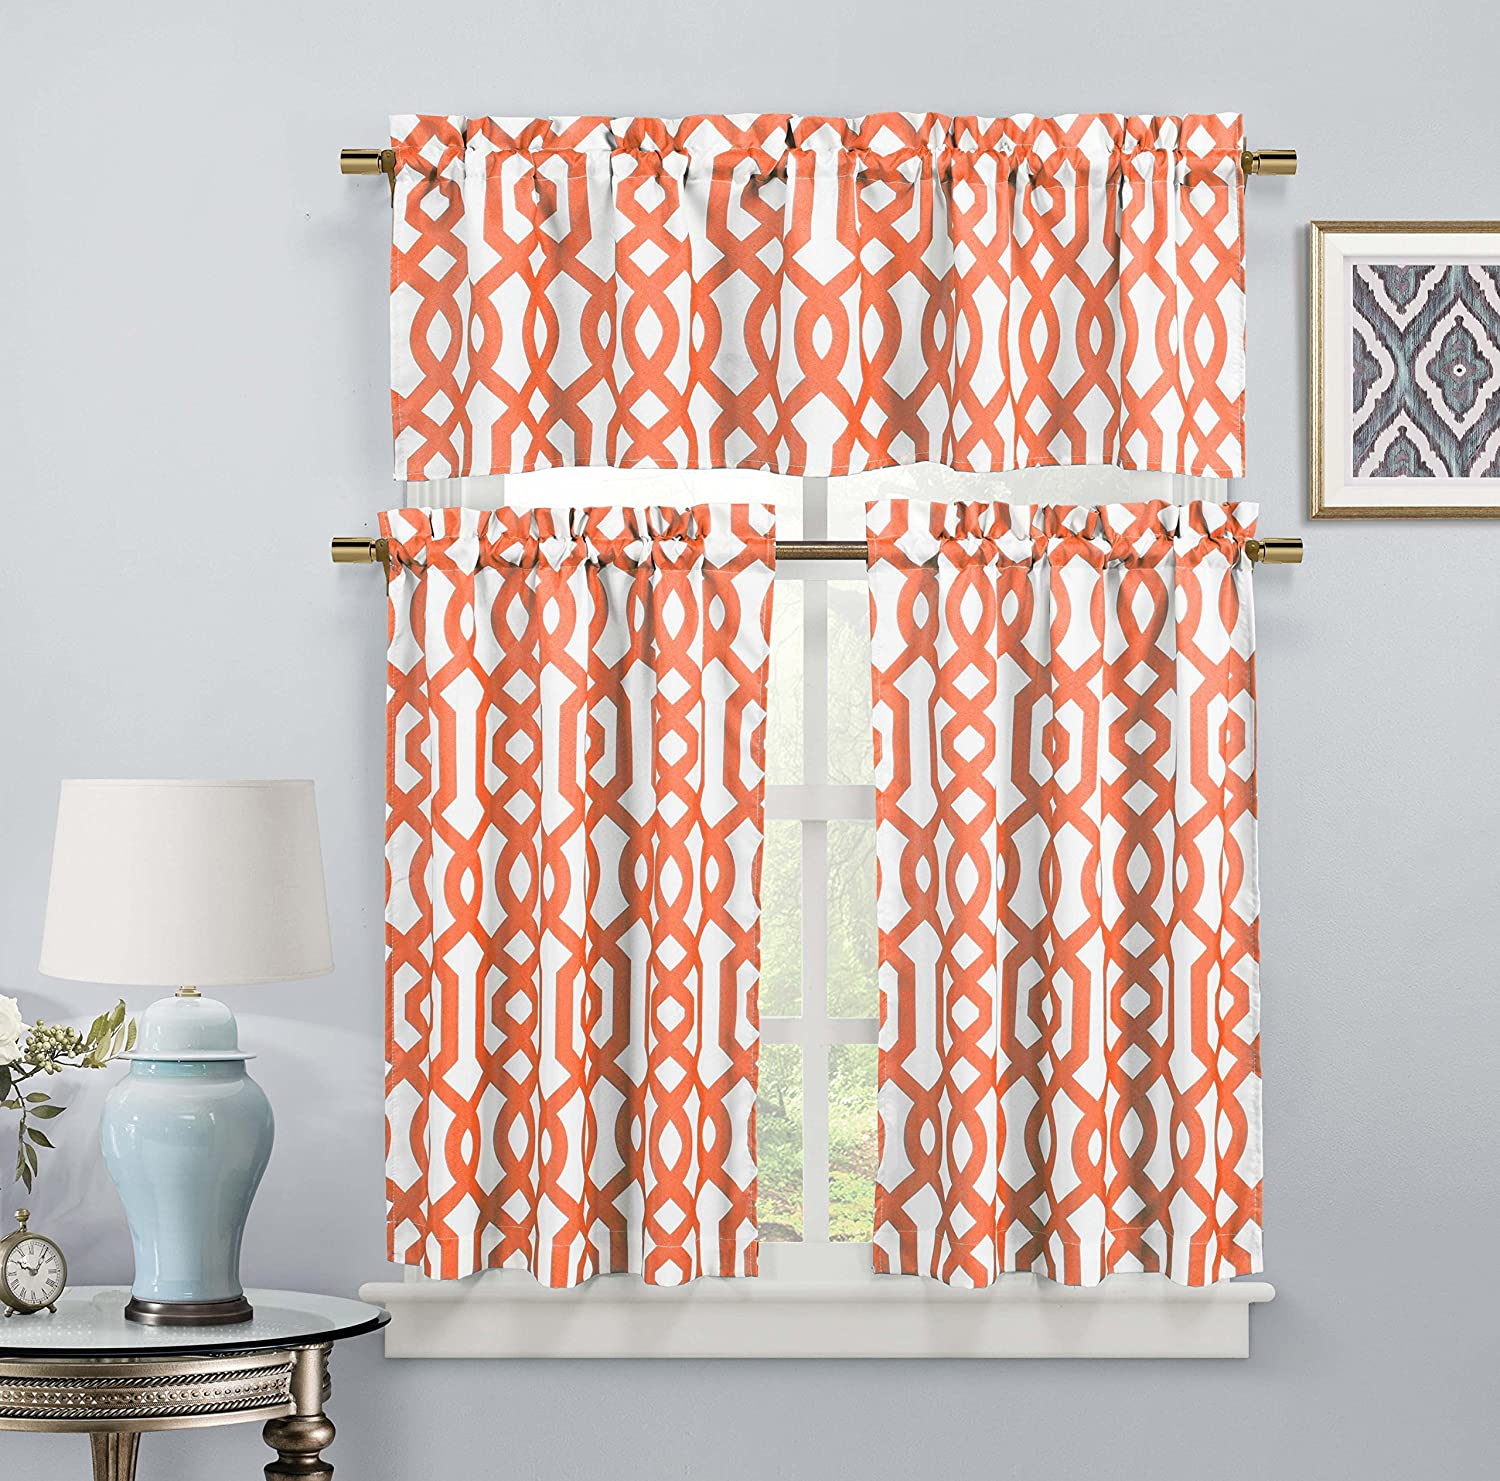 Duck River Textiles Ashmont Geometric Canvas Textured Kitchen Tier /& Valance Set Orange Bedroom - Bath Laundry Small Window Curtain for Cafe